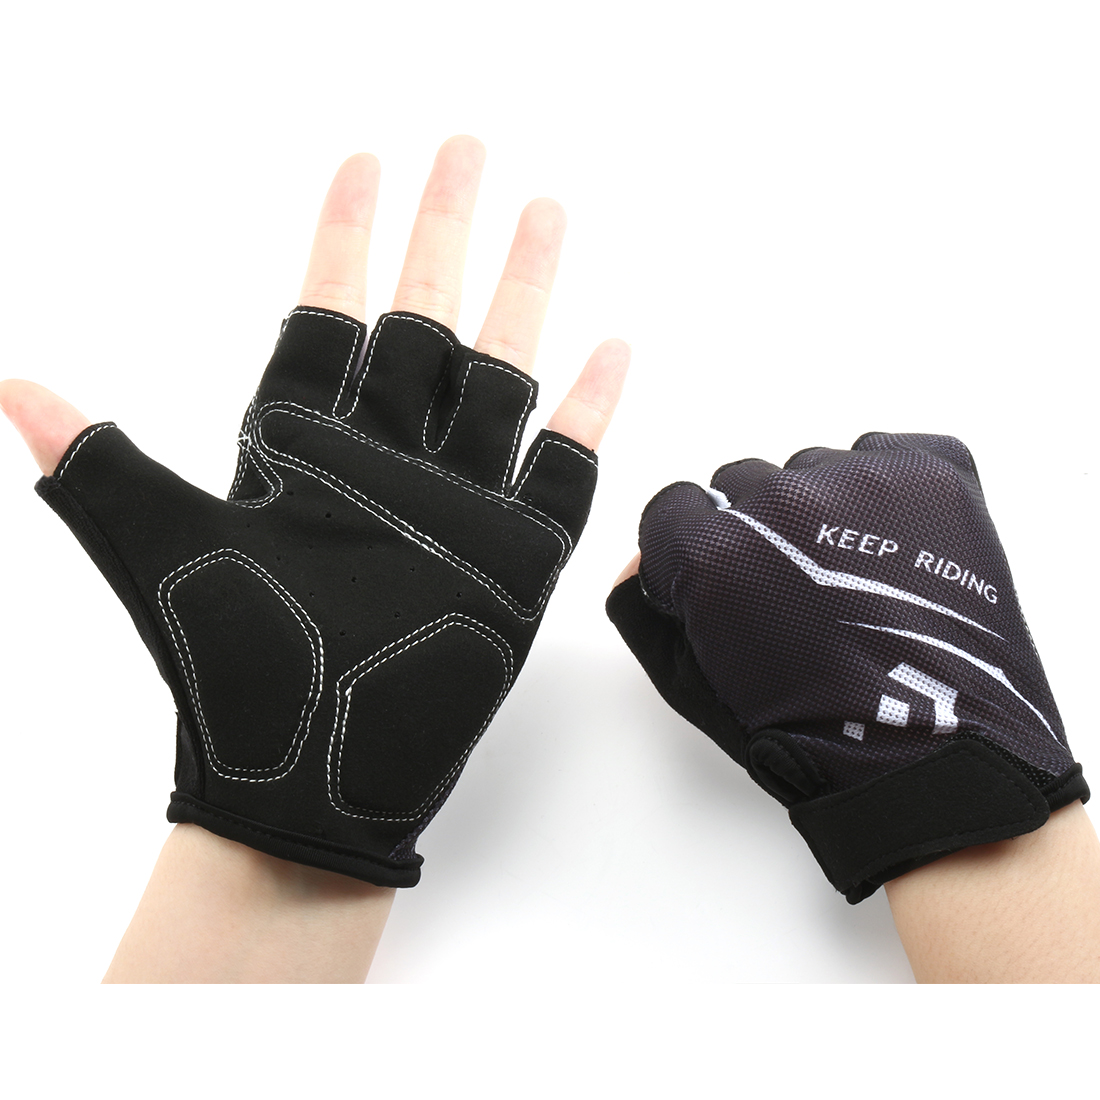 Outdoor Elasticized Fabric Sports Exercise Half Finger Cycling Gloves Palm Support Pair (White L)